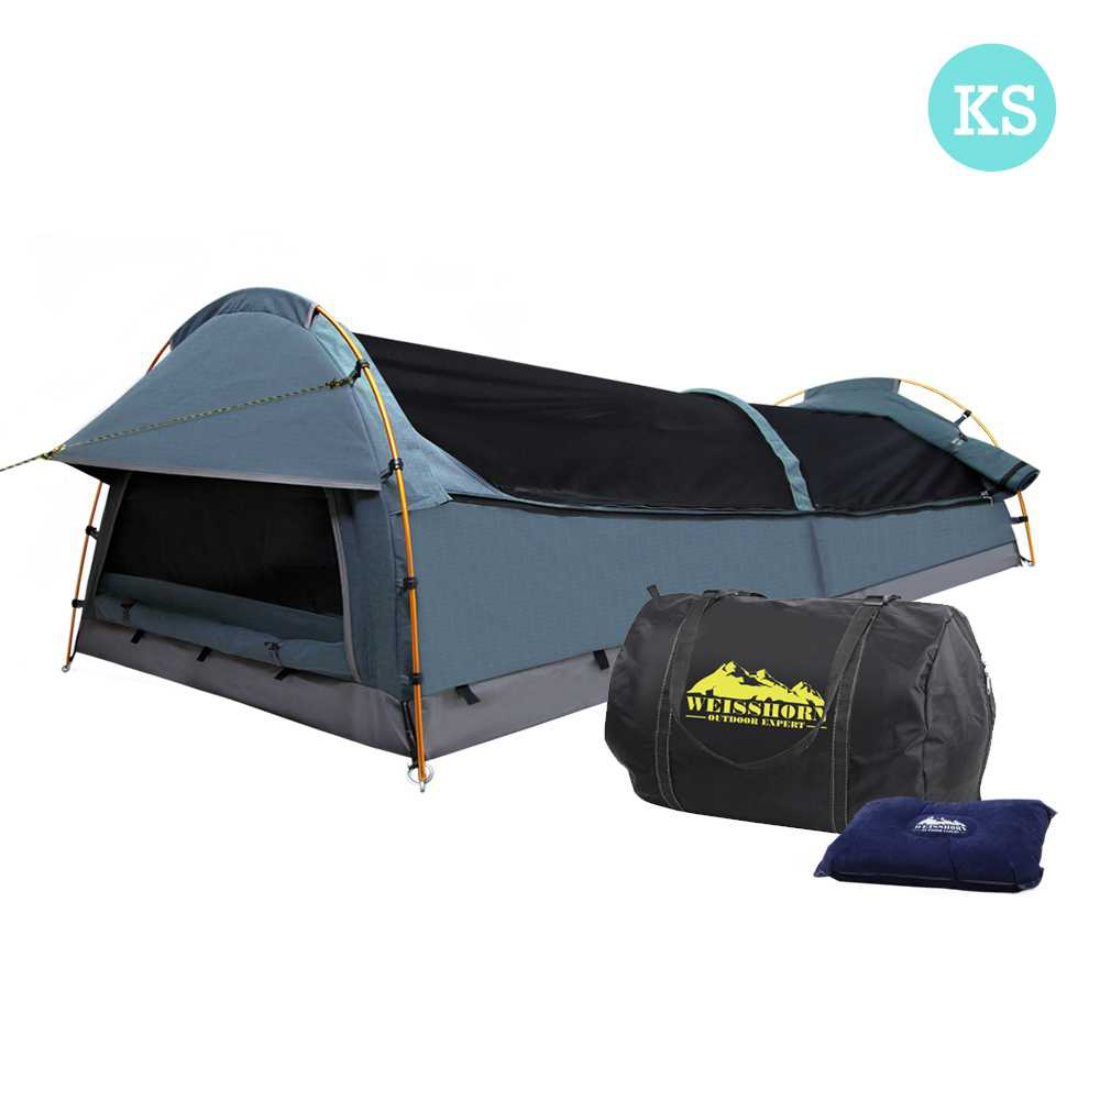 King Single Camping Canvas Swag Tent Navy w/ Air Pillow